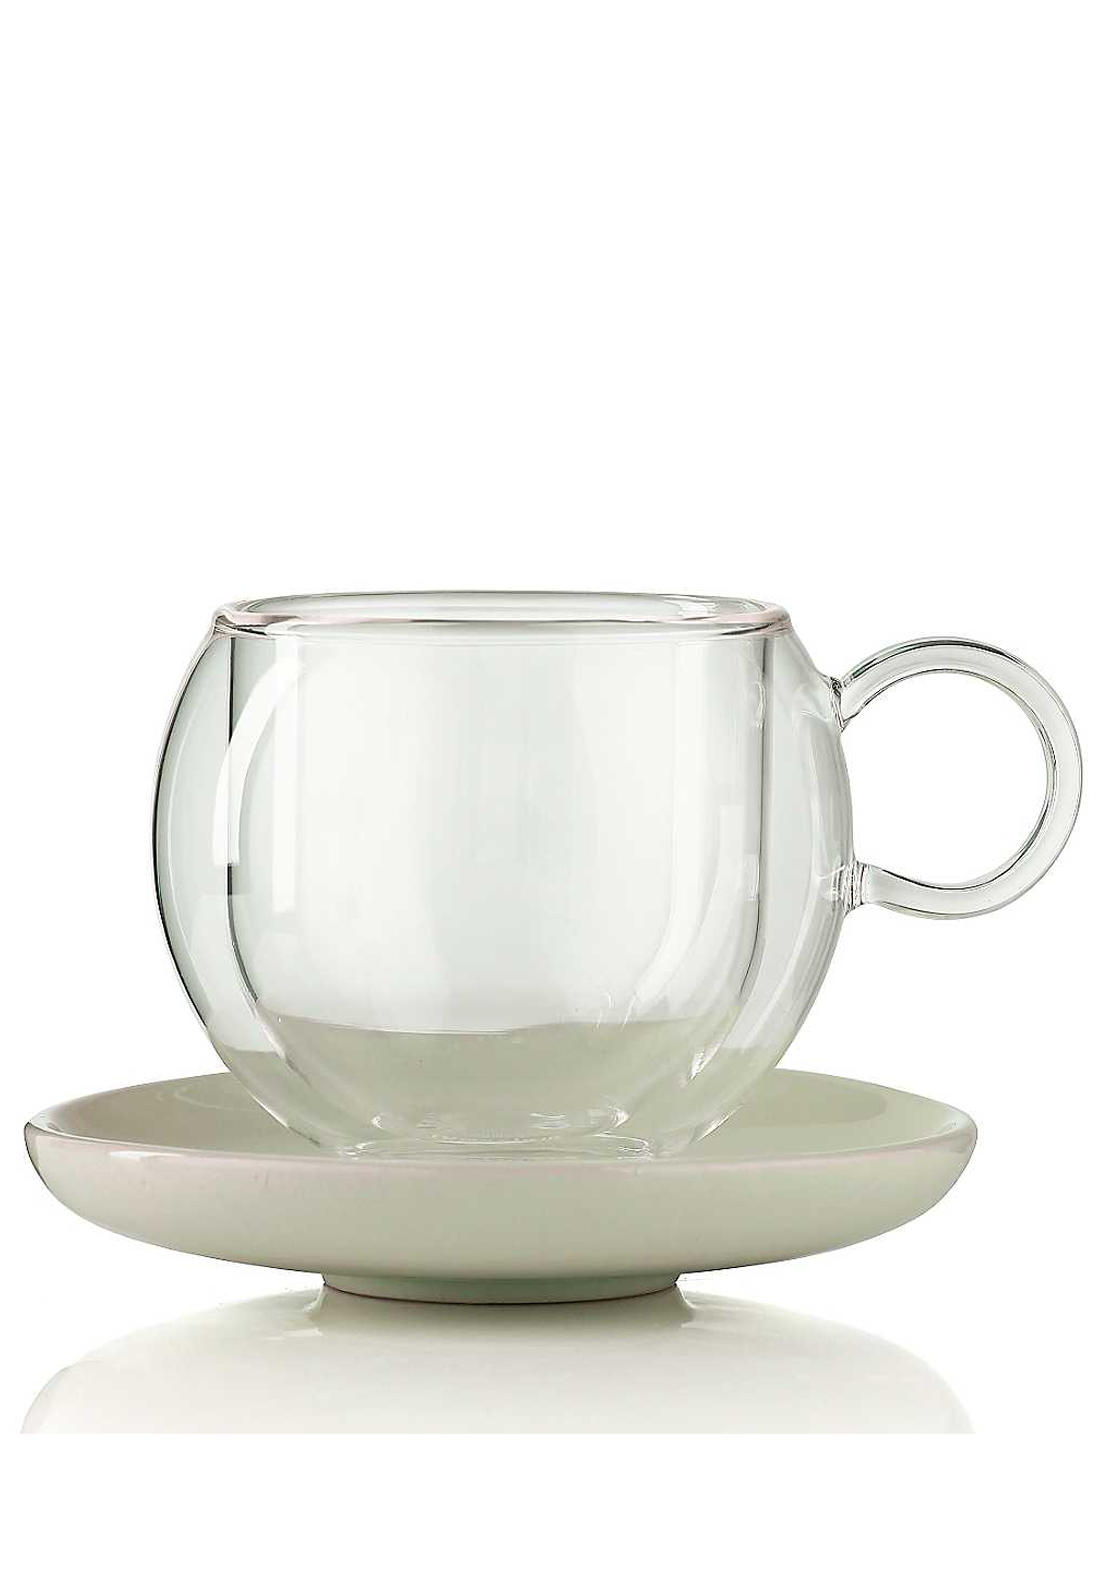 La Cafetiere Medium Bola Cup & Saucer